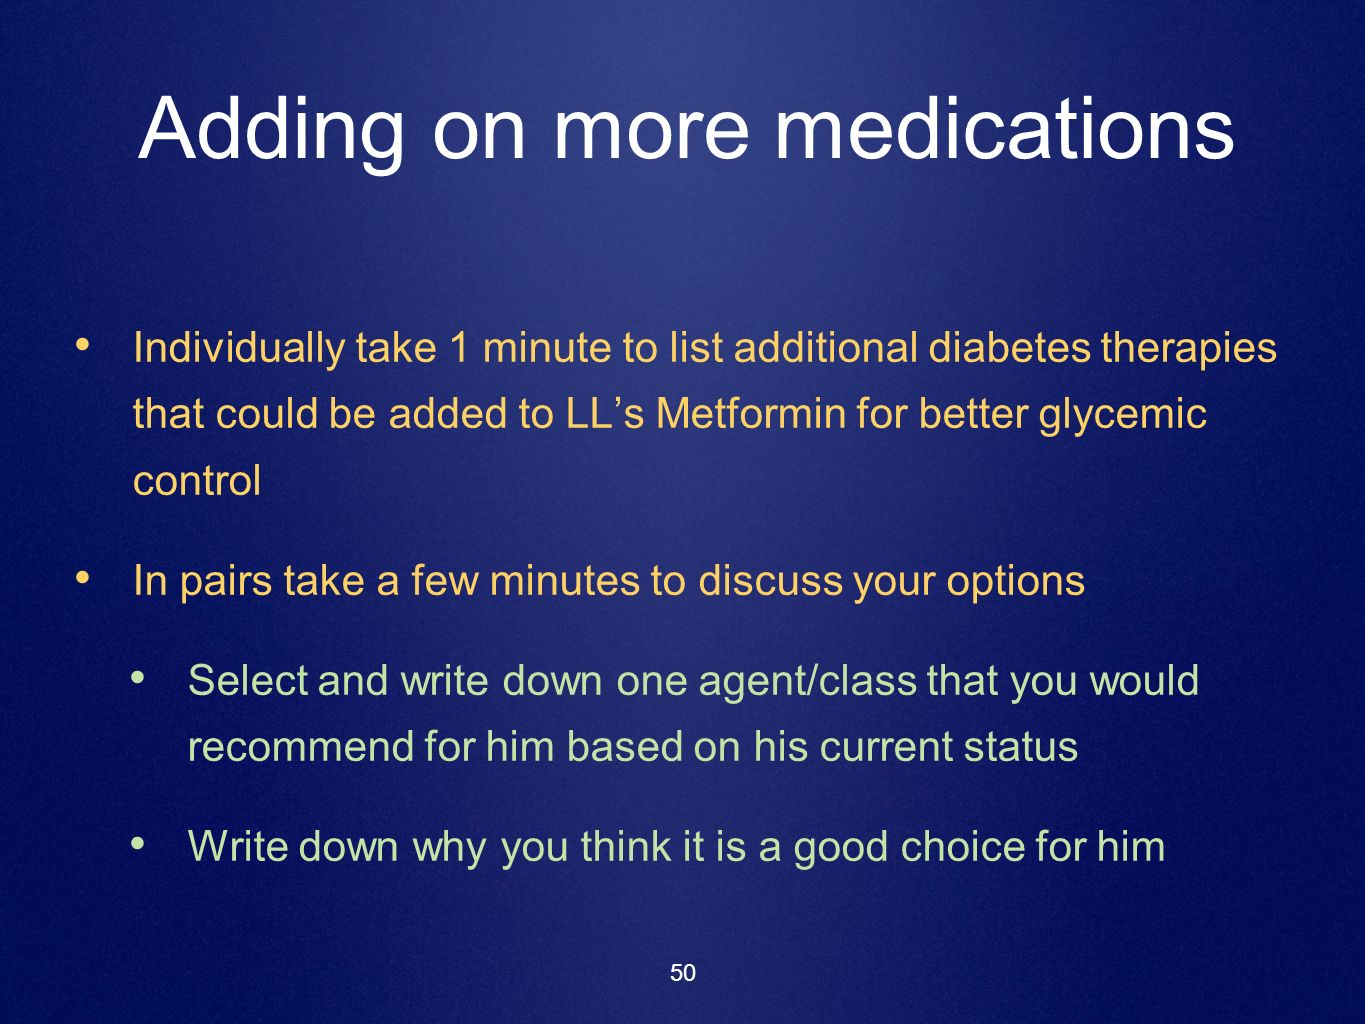 Adding on more medications